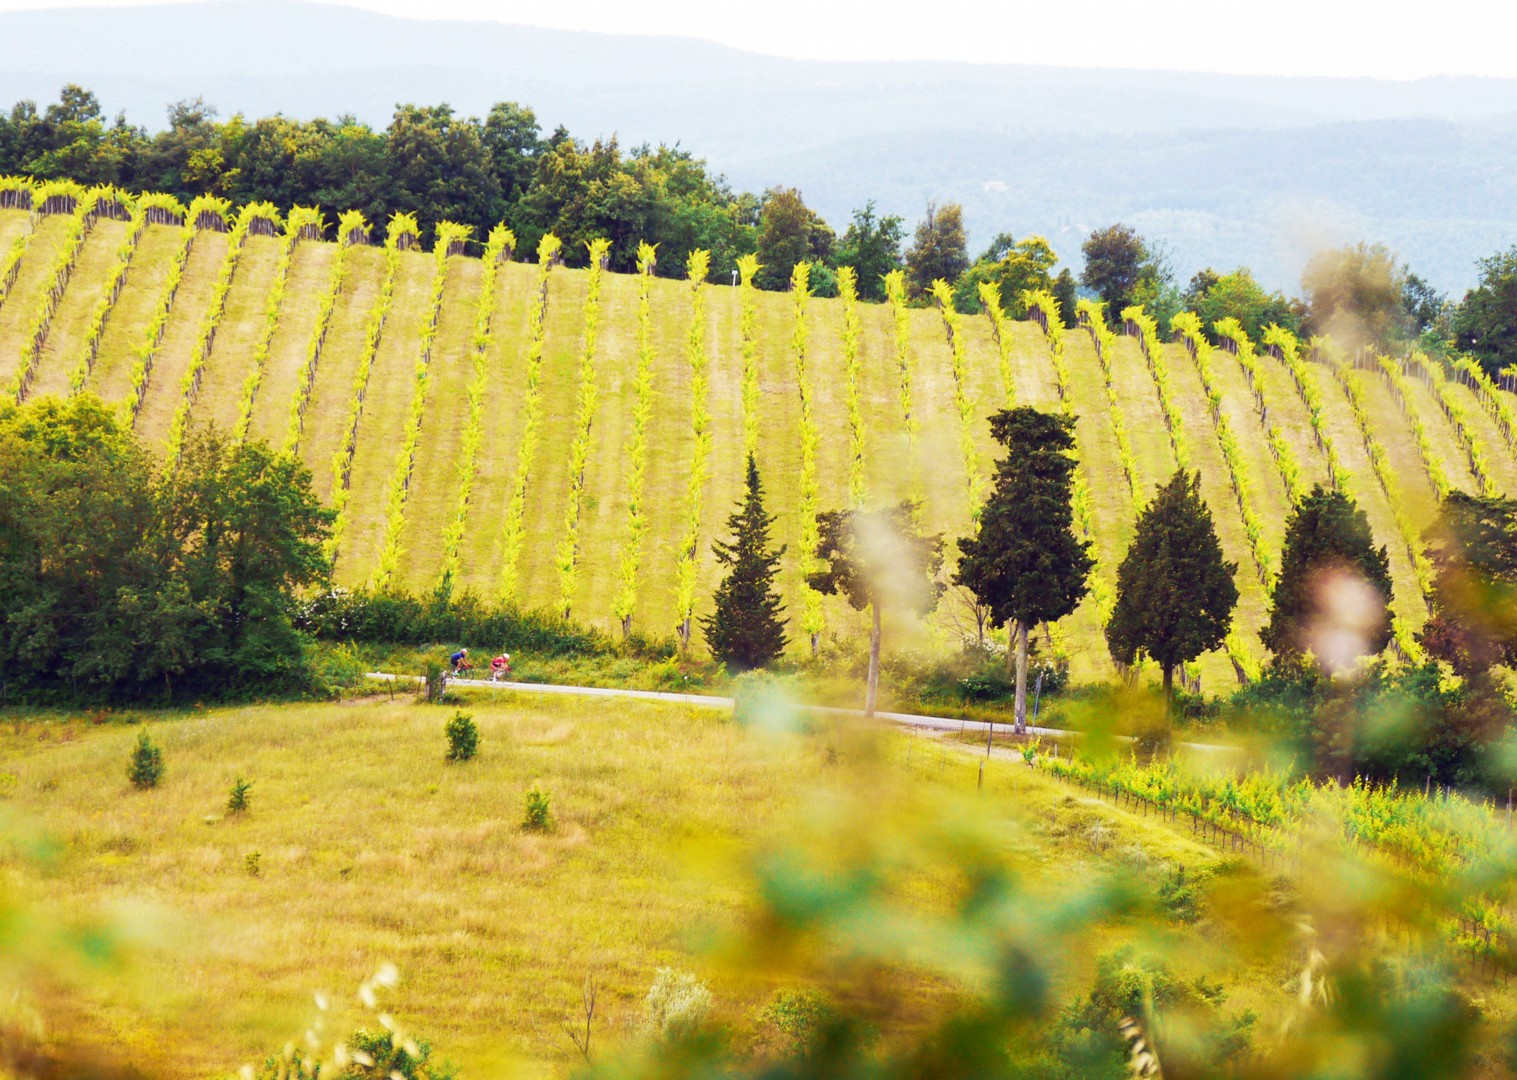 cycling-vineyards-tuscany-italy-holiday.jpg - Italy - Tuscany Tourer - Guided Road Cycling Holiday - Road Cycling